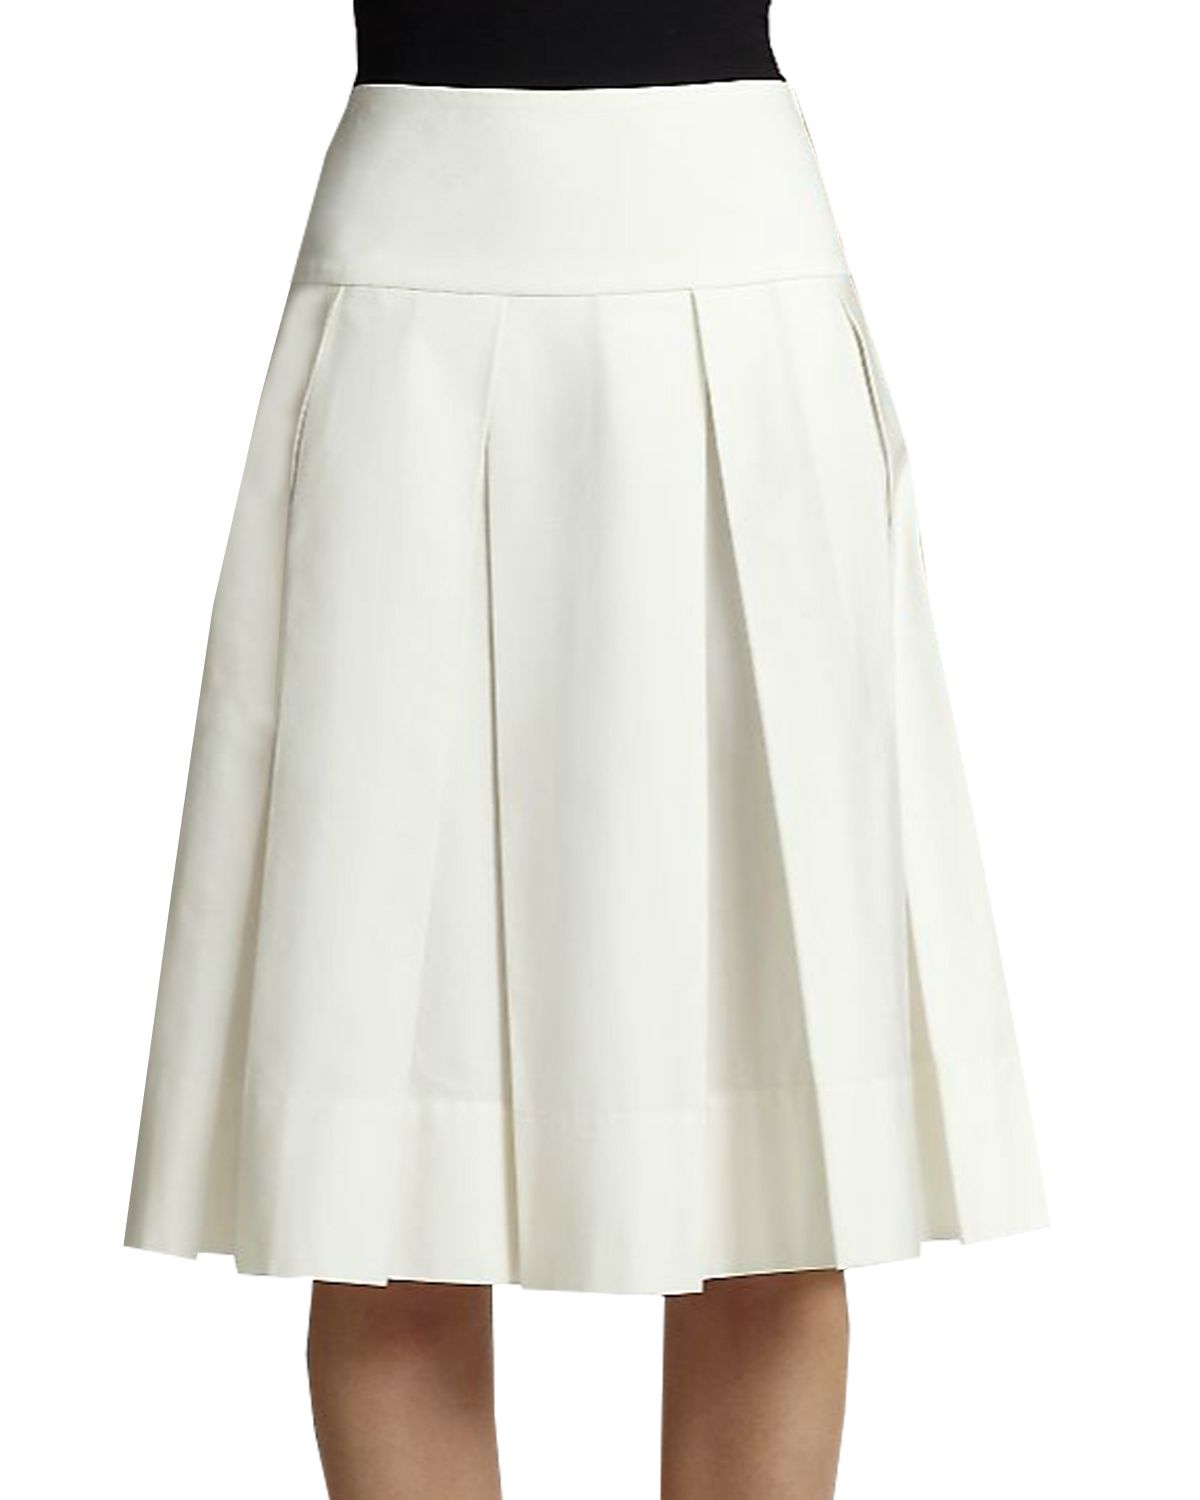 815335c332 Box Pleated Skirt with Yoke in 2019 | Custom made Skirts | Box pleat ...